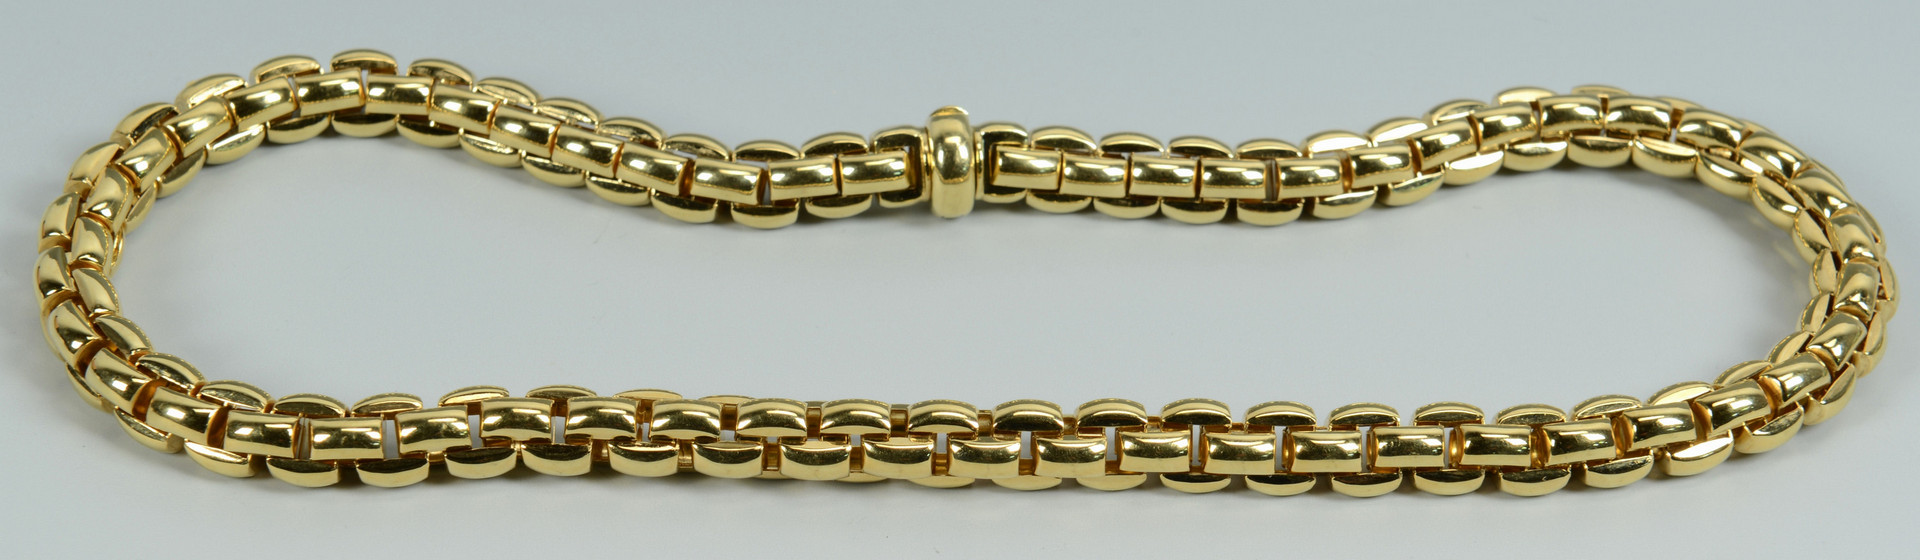 Lot 106: Fope 18k Gold Necklace, 67.7 grams